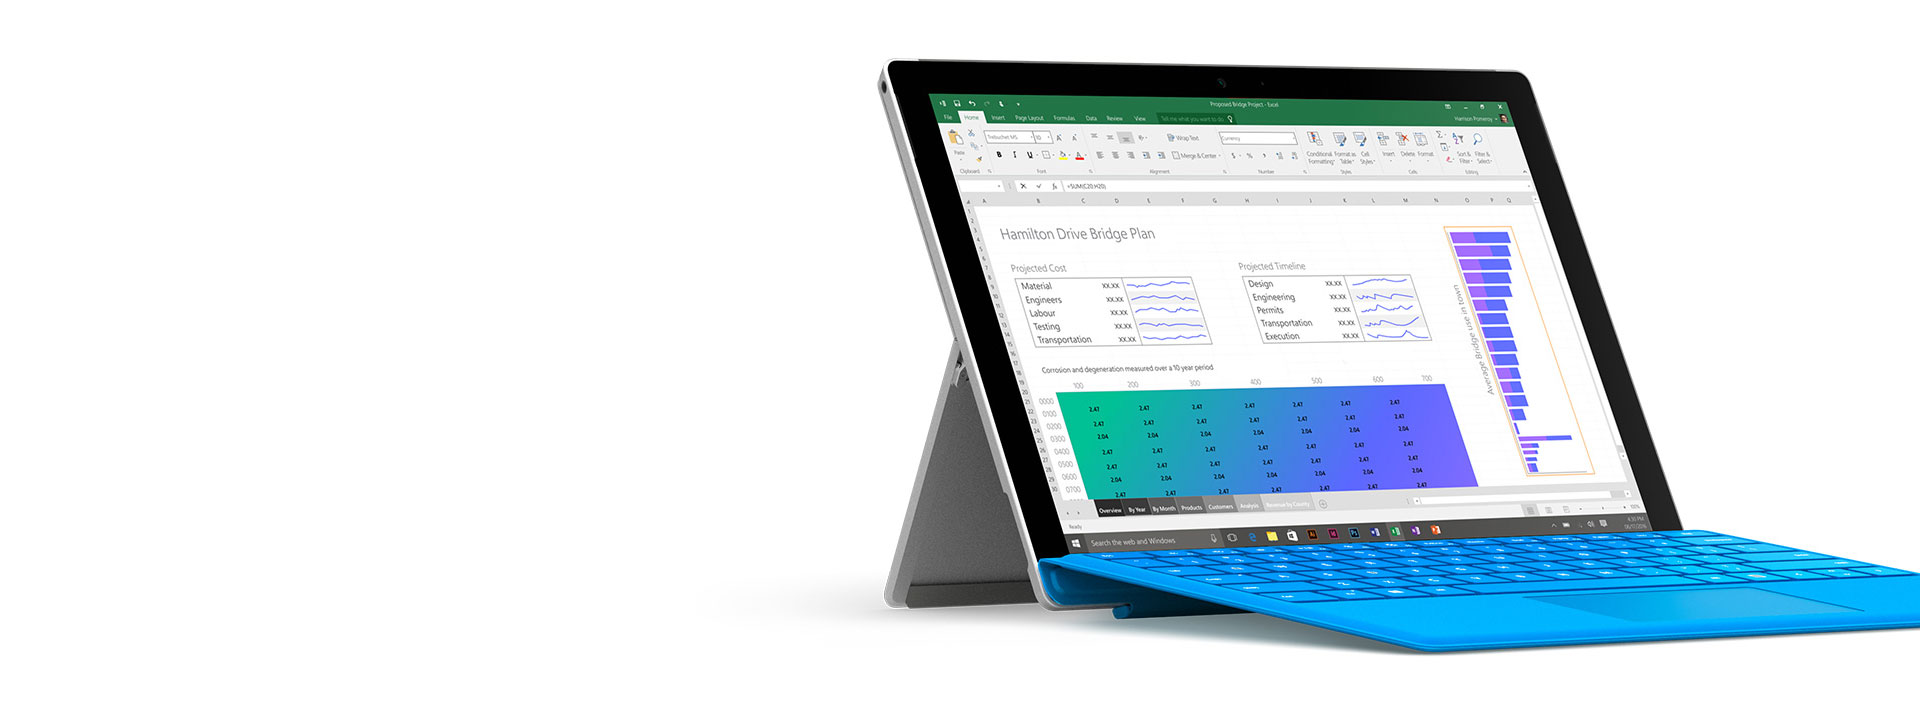 microsoft surface pro overview pdf